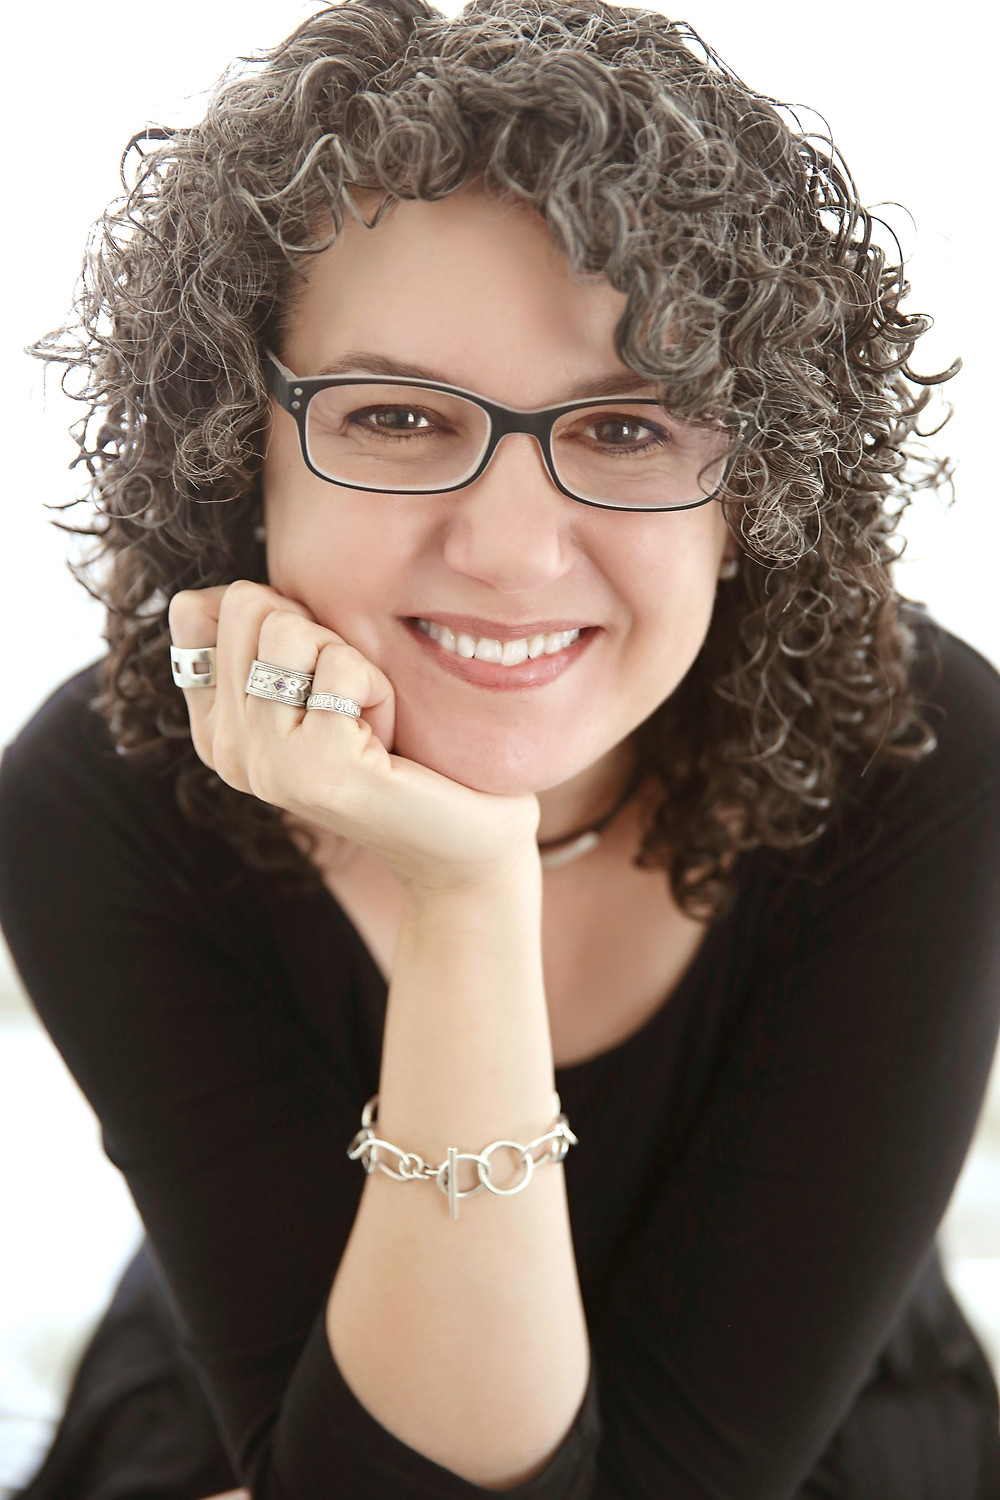 women headshot in studio wearing glasses salt and pepper hair and smiling with rings on